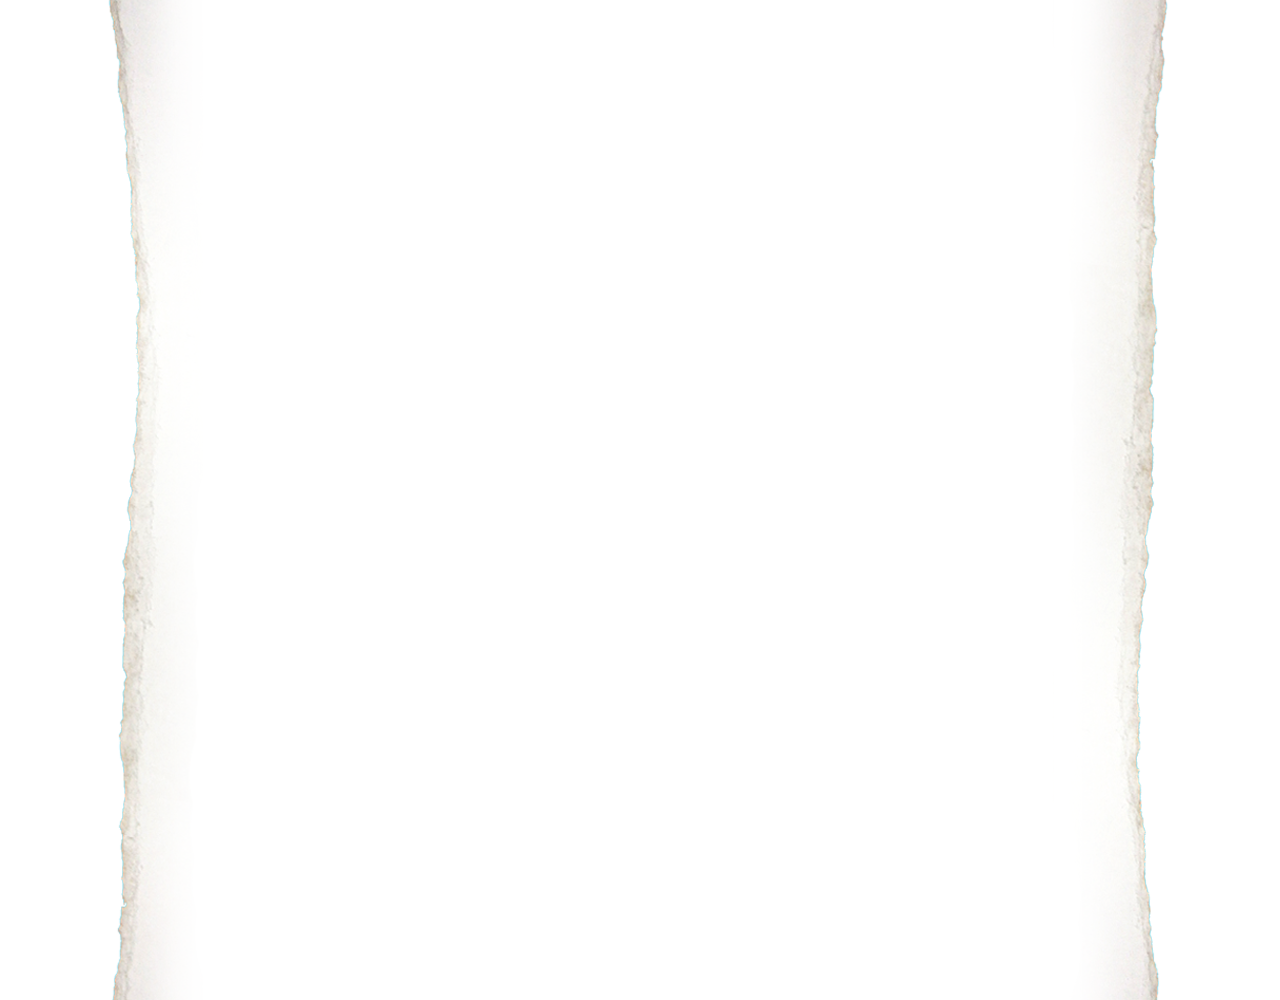 Free Torn White Paper Png, Download Free Clip Art, Free Clip.